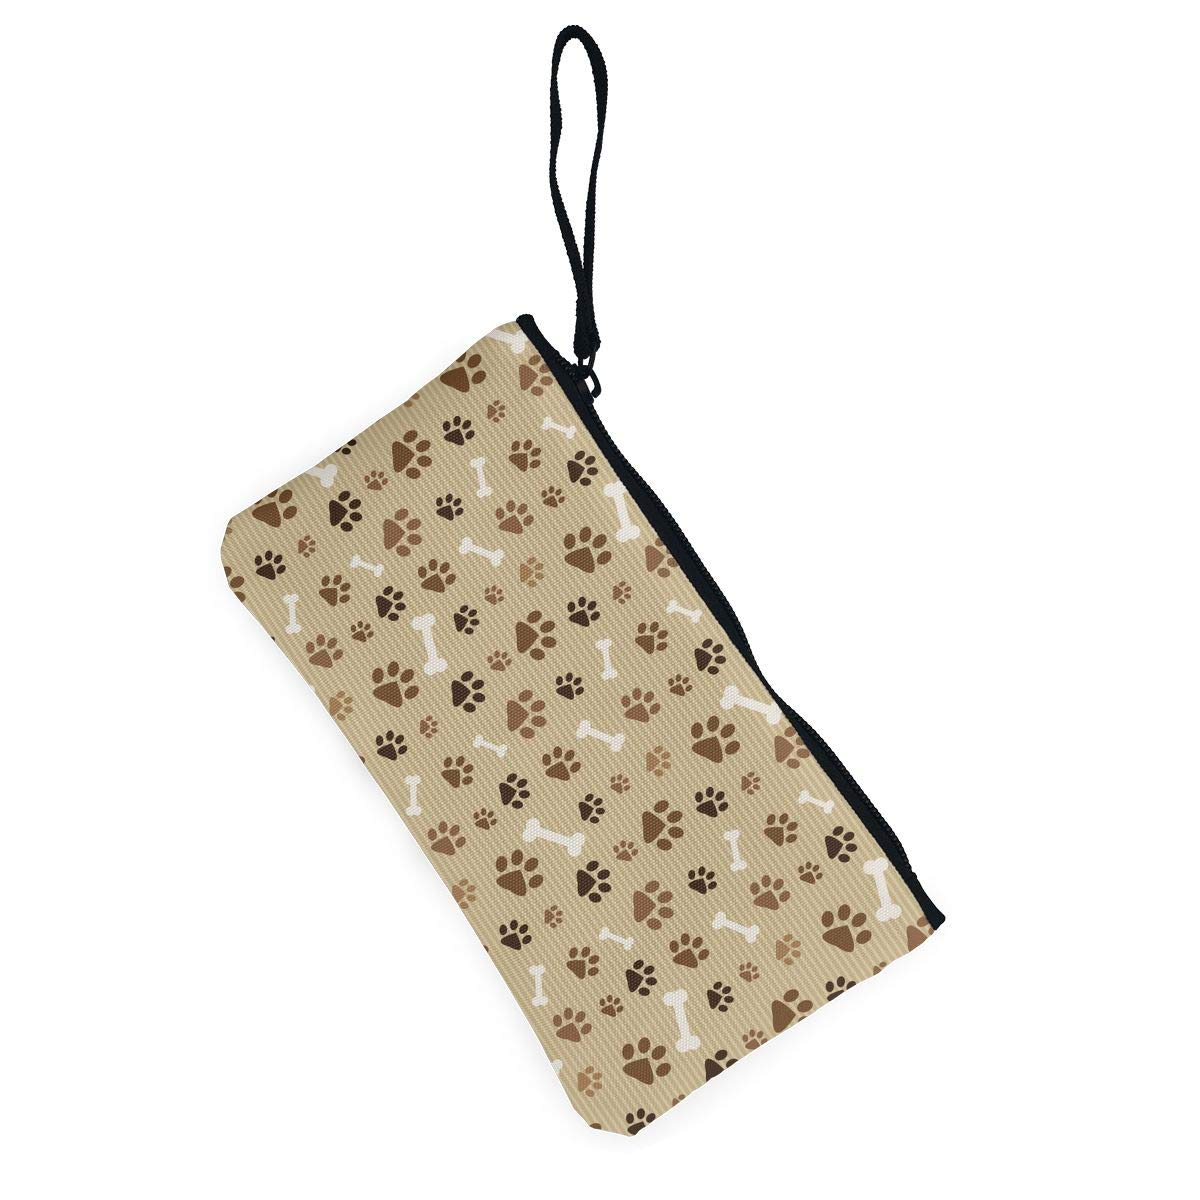 Footprints and Bones Pattern Canvas Change Coin Purse Retro Wallet Bag with Zip